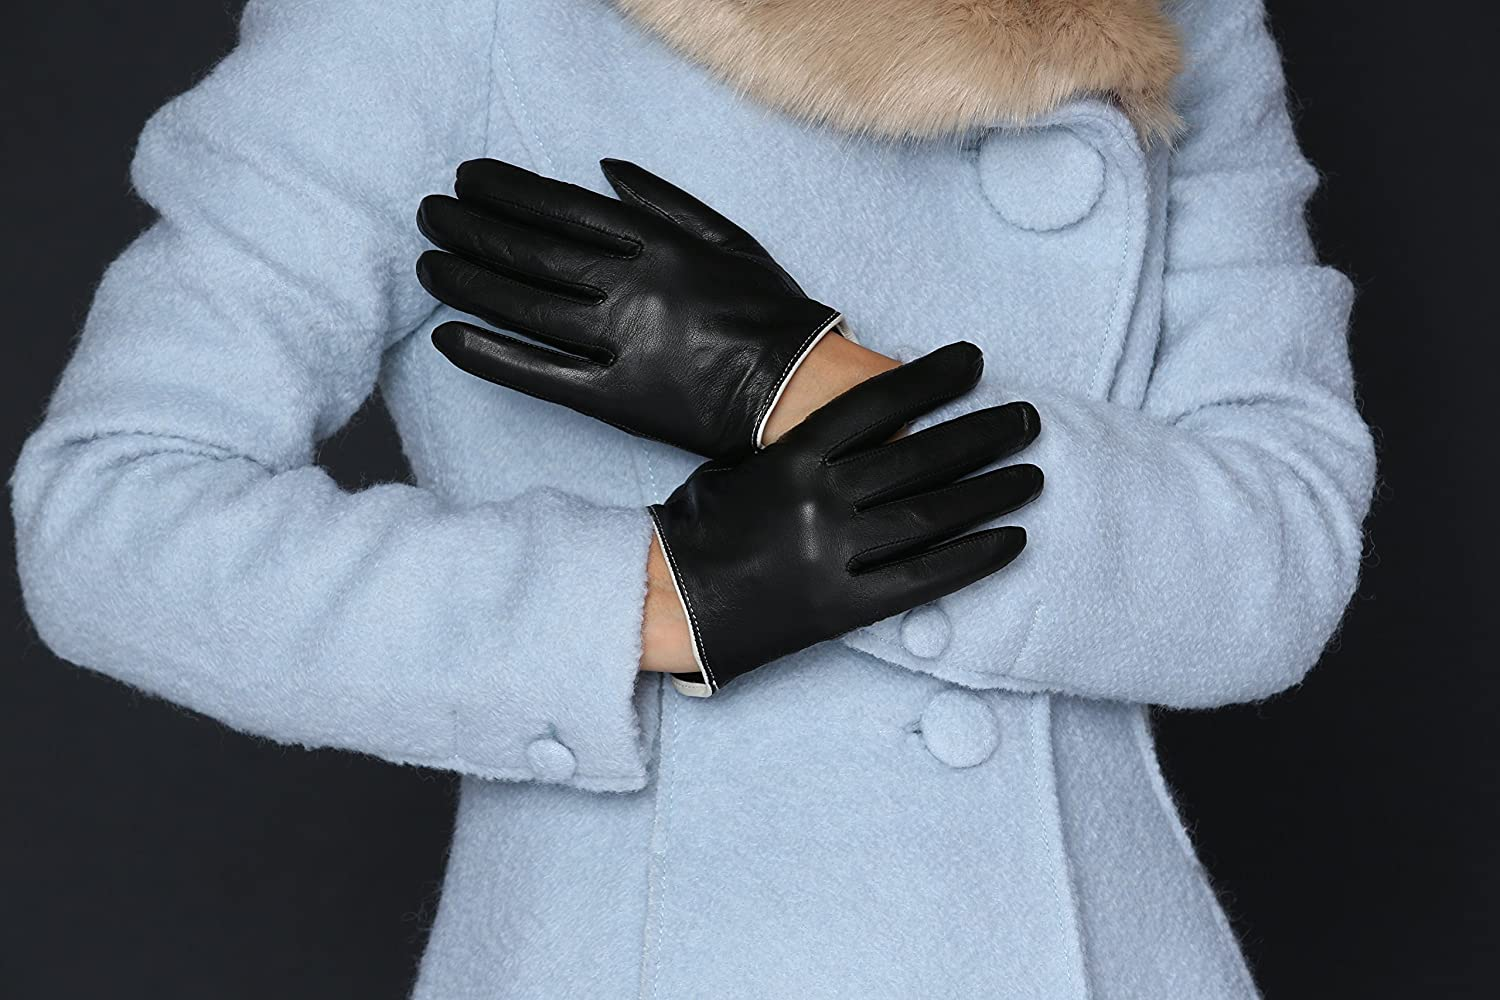 Driving gloves london ontario - Moda Ms Rome Women S Genuine Leather Gloves With Cut Off Cuffs At Amazon Women S Clothing Store